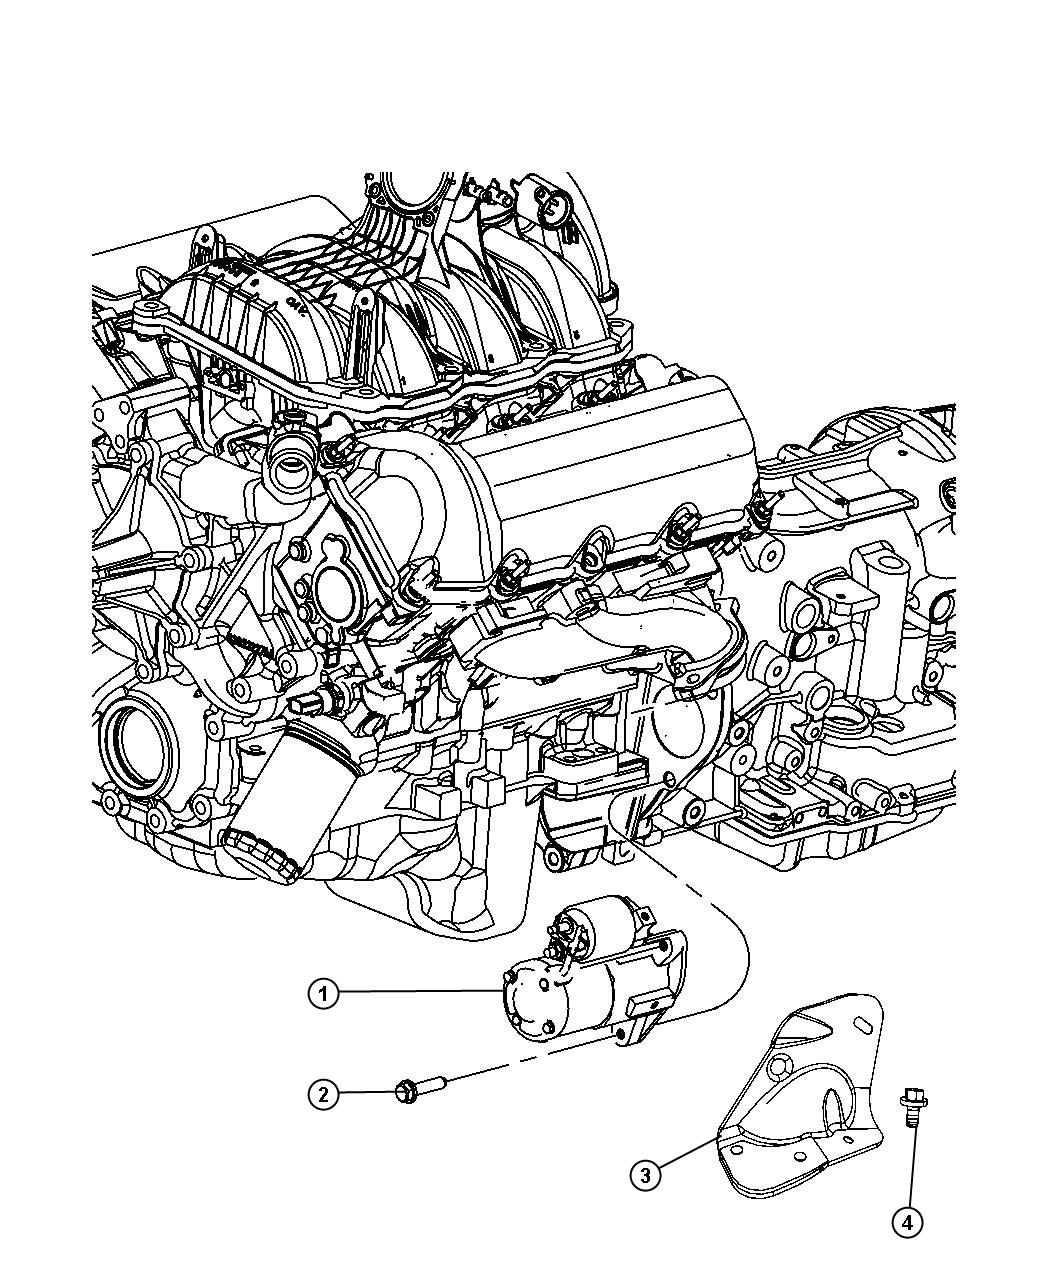 Jeep Liberty Starter Engine After 10 22 08